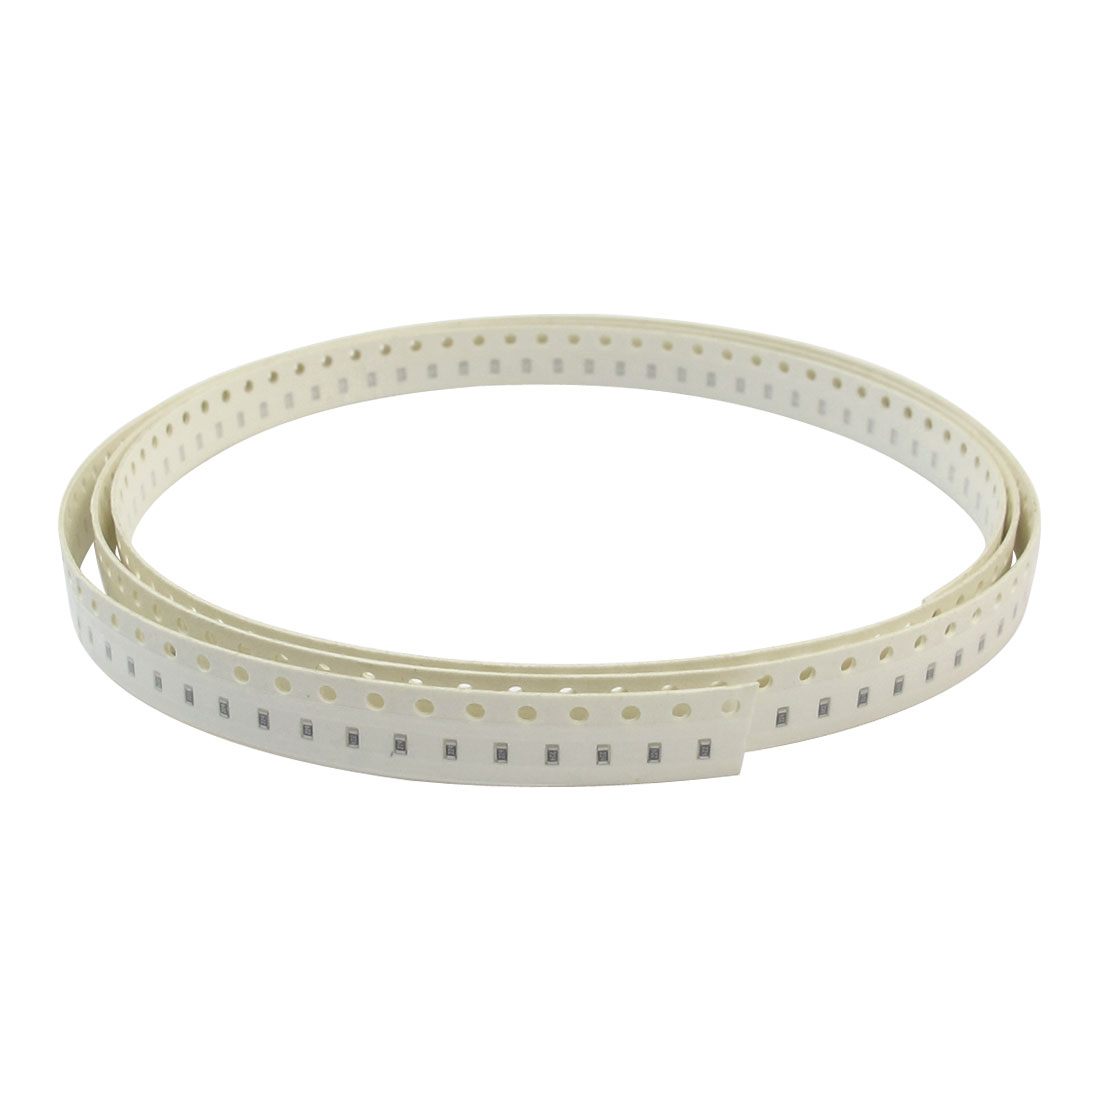 200 Pcs 0603 1608 390 Ohm Resistance 1/16W Watt 5% Tolerance Surface Mounted Thin Film SMT SMD Chip Fixed Resistors Strip